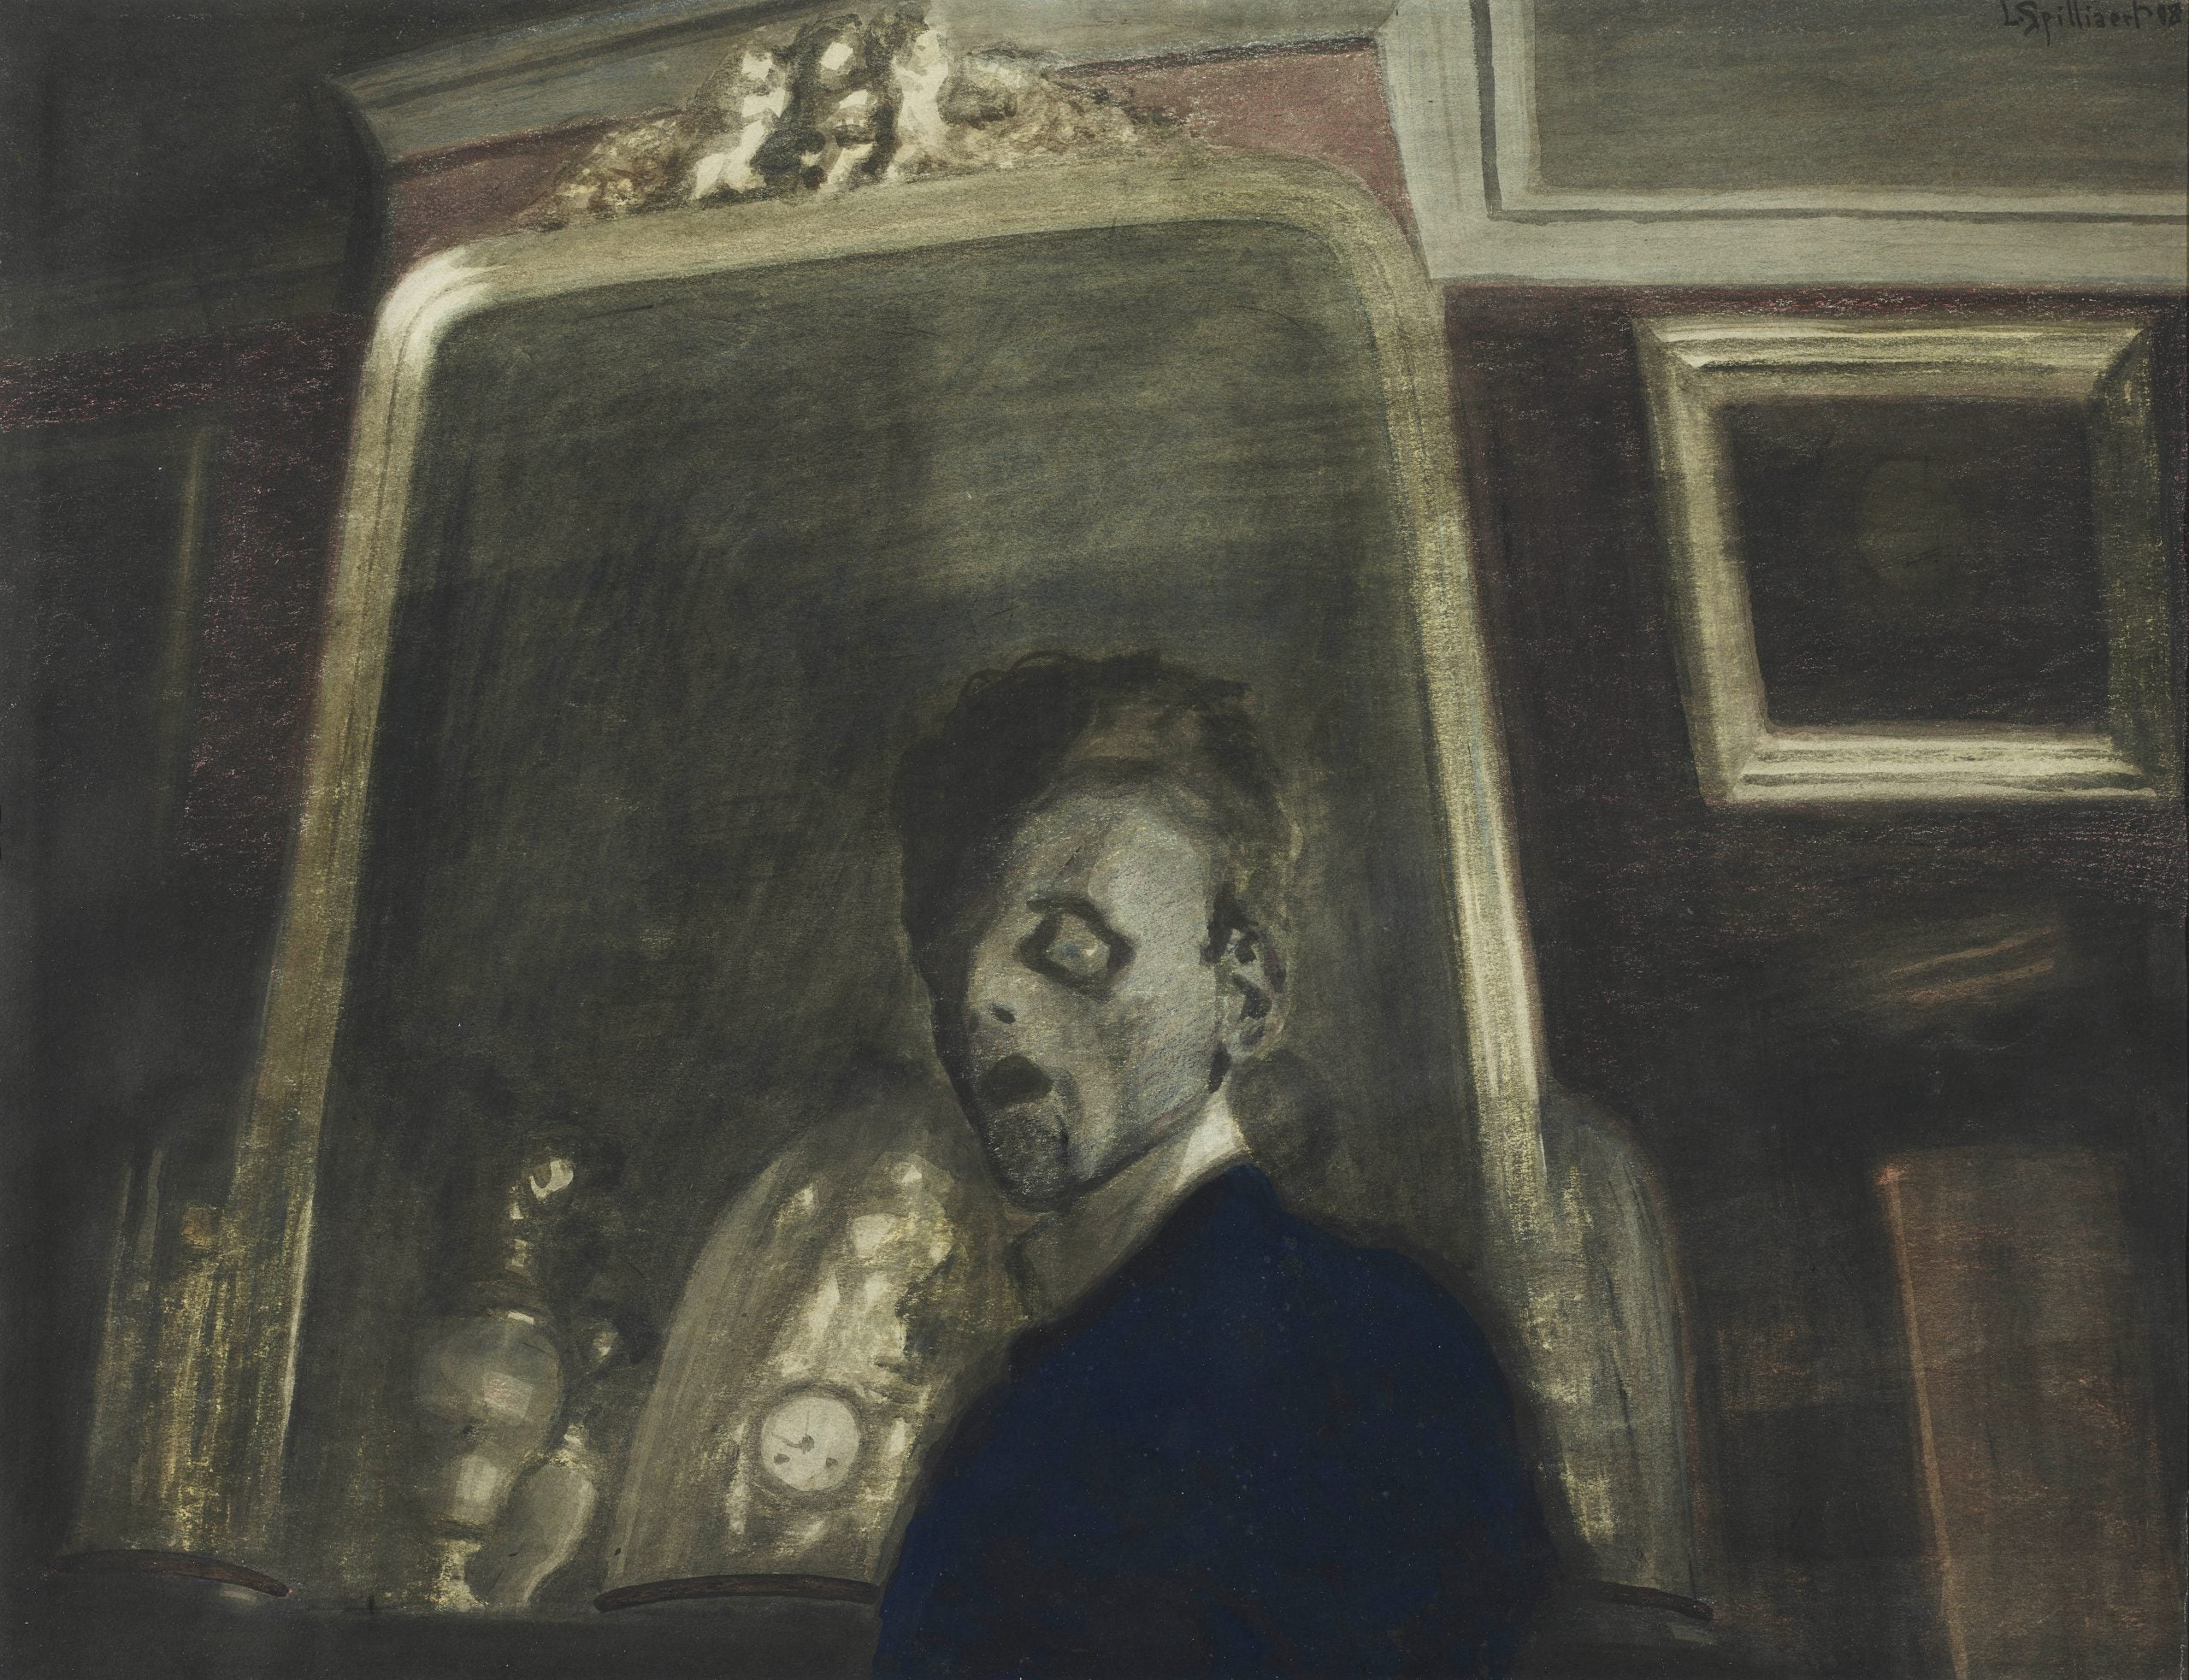 The haunted, monochrome pictures of Léon Spilliaert